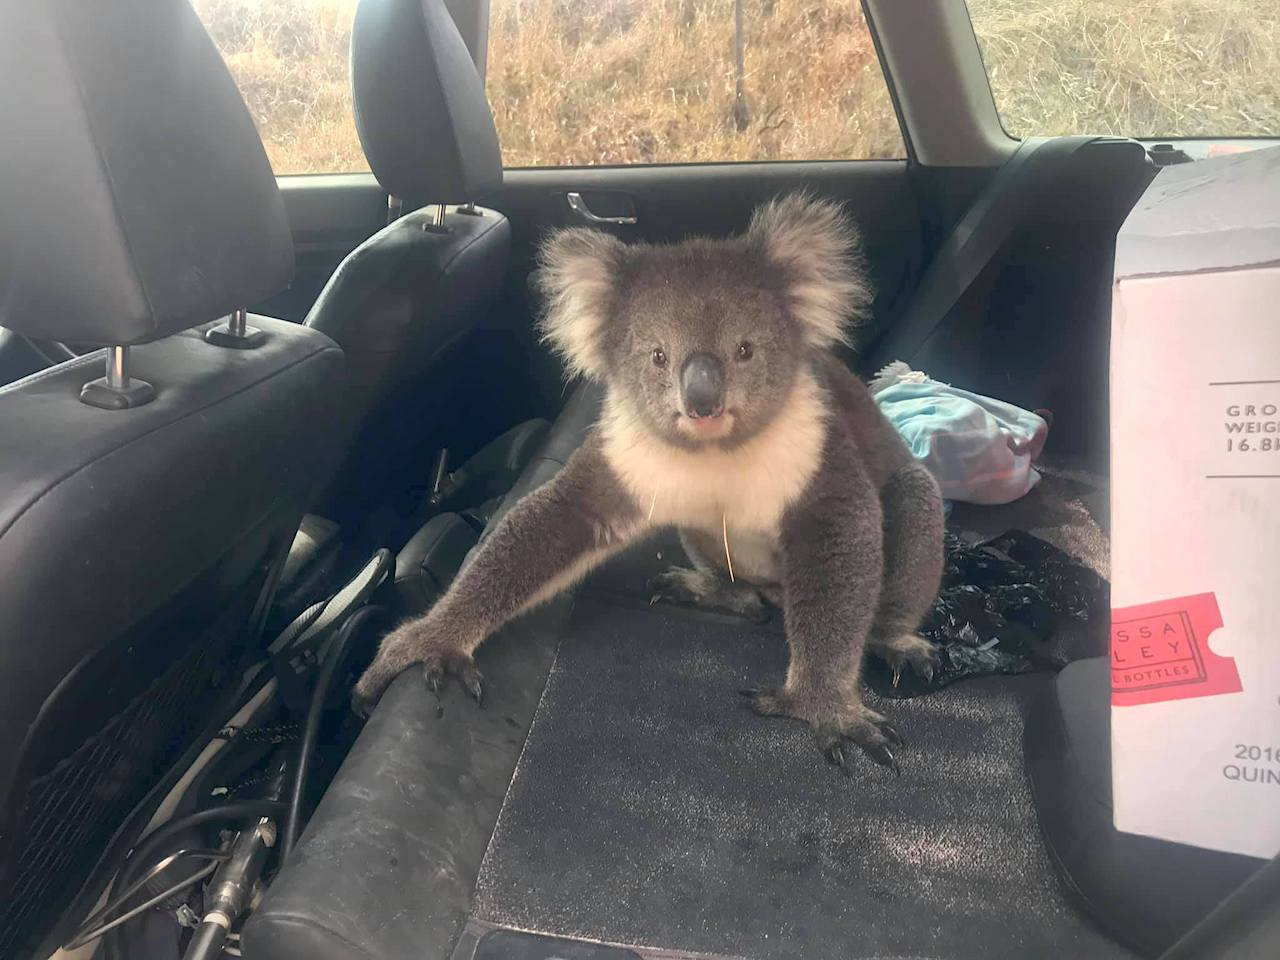 A Hot and Thirsty Koala Bear Seeks Cool Refuge in the Air Conditioned Environment of a Winemaker's Car